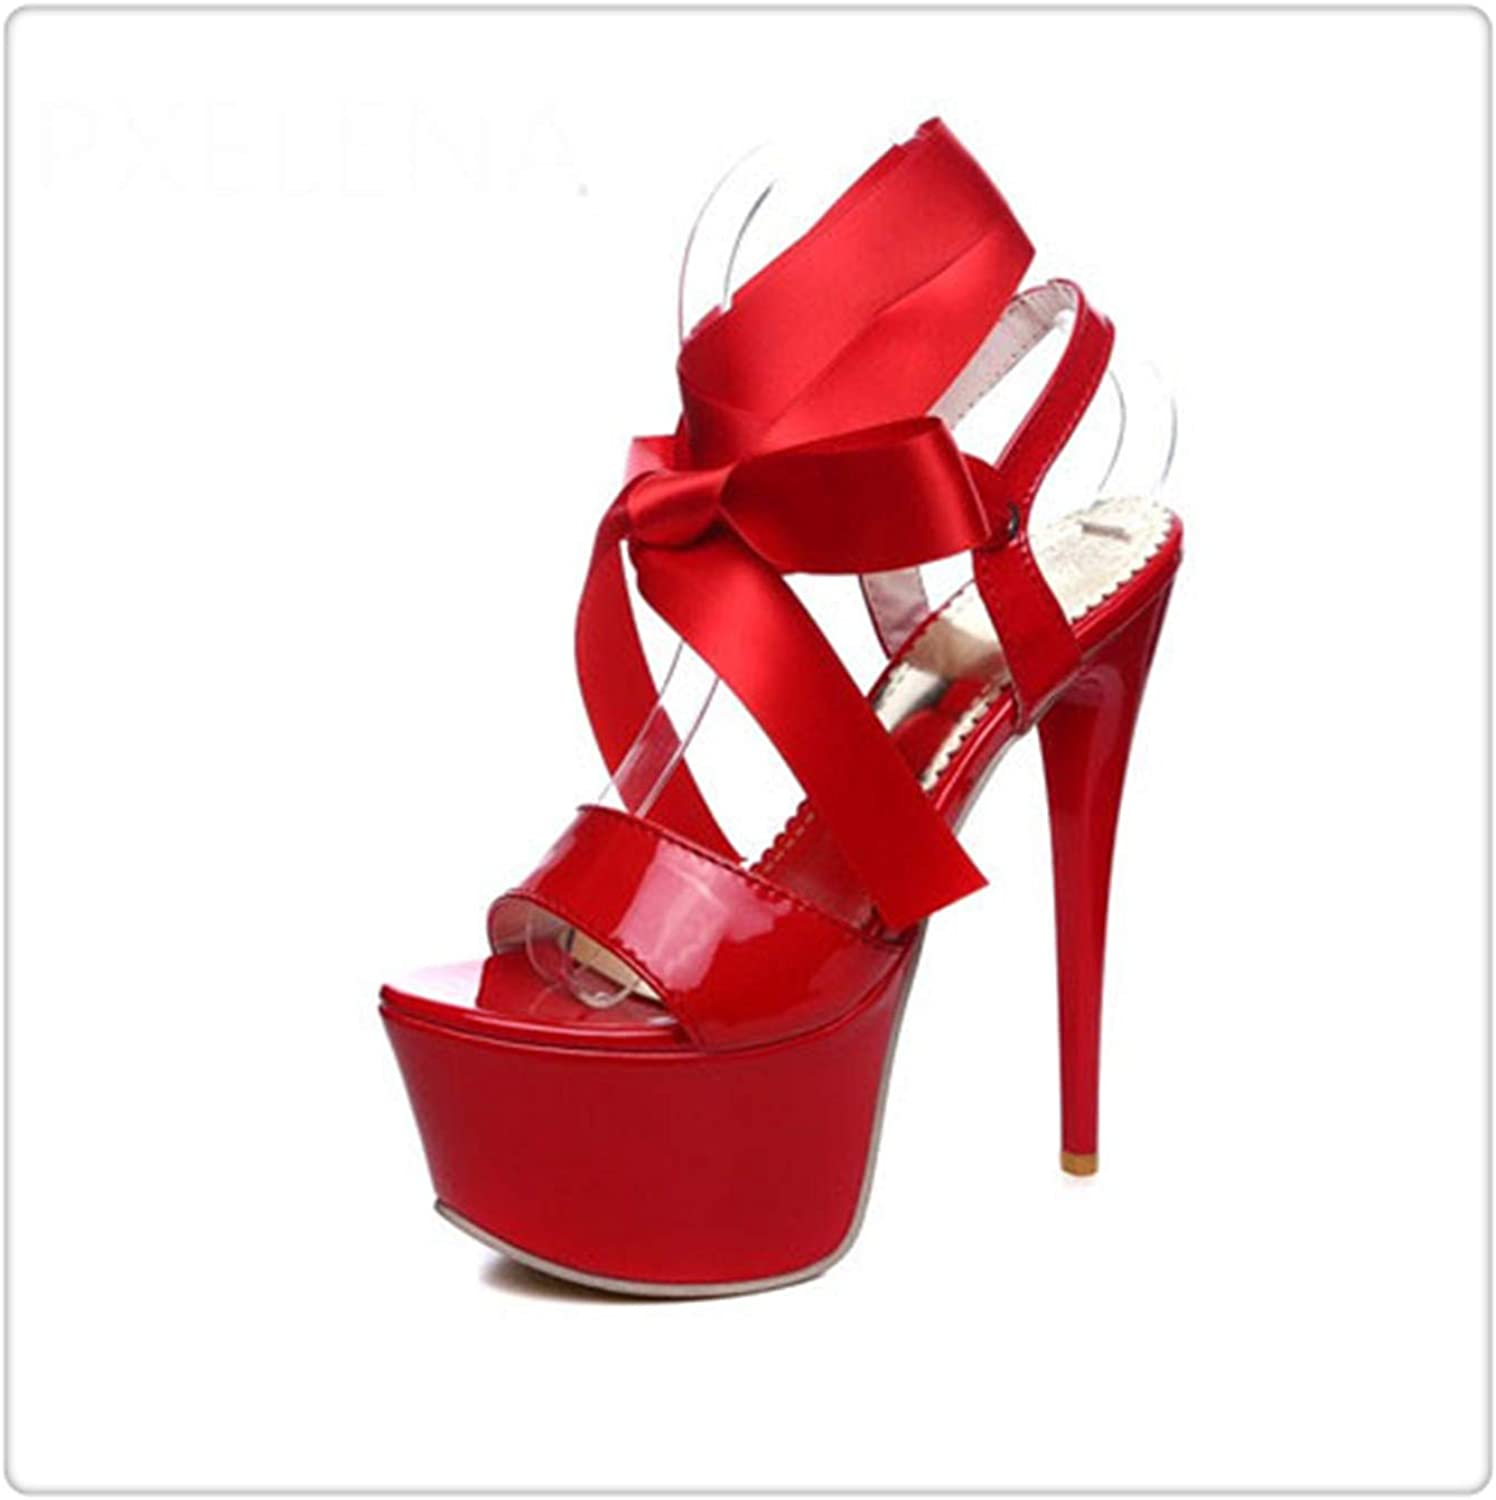 Xjizm 2018 Summer Sexy Super High Heels 16cm Platform Gladiator Sandals Woman Cross-Tied Rome Sandals Party Ladies shoes 109 Red 10